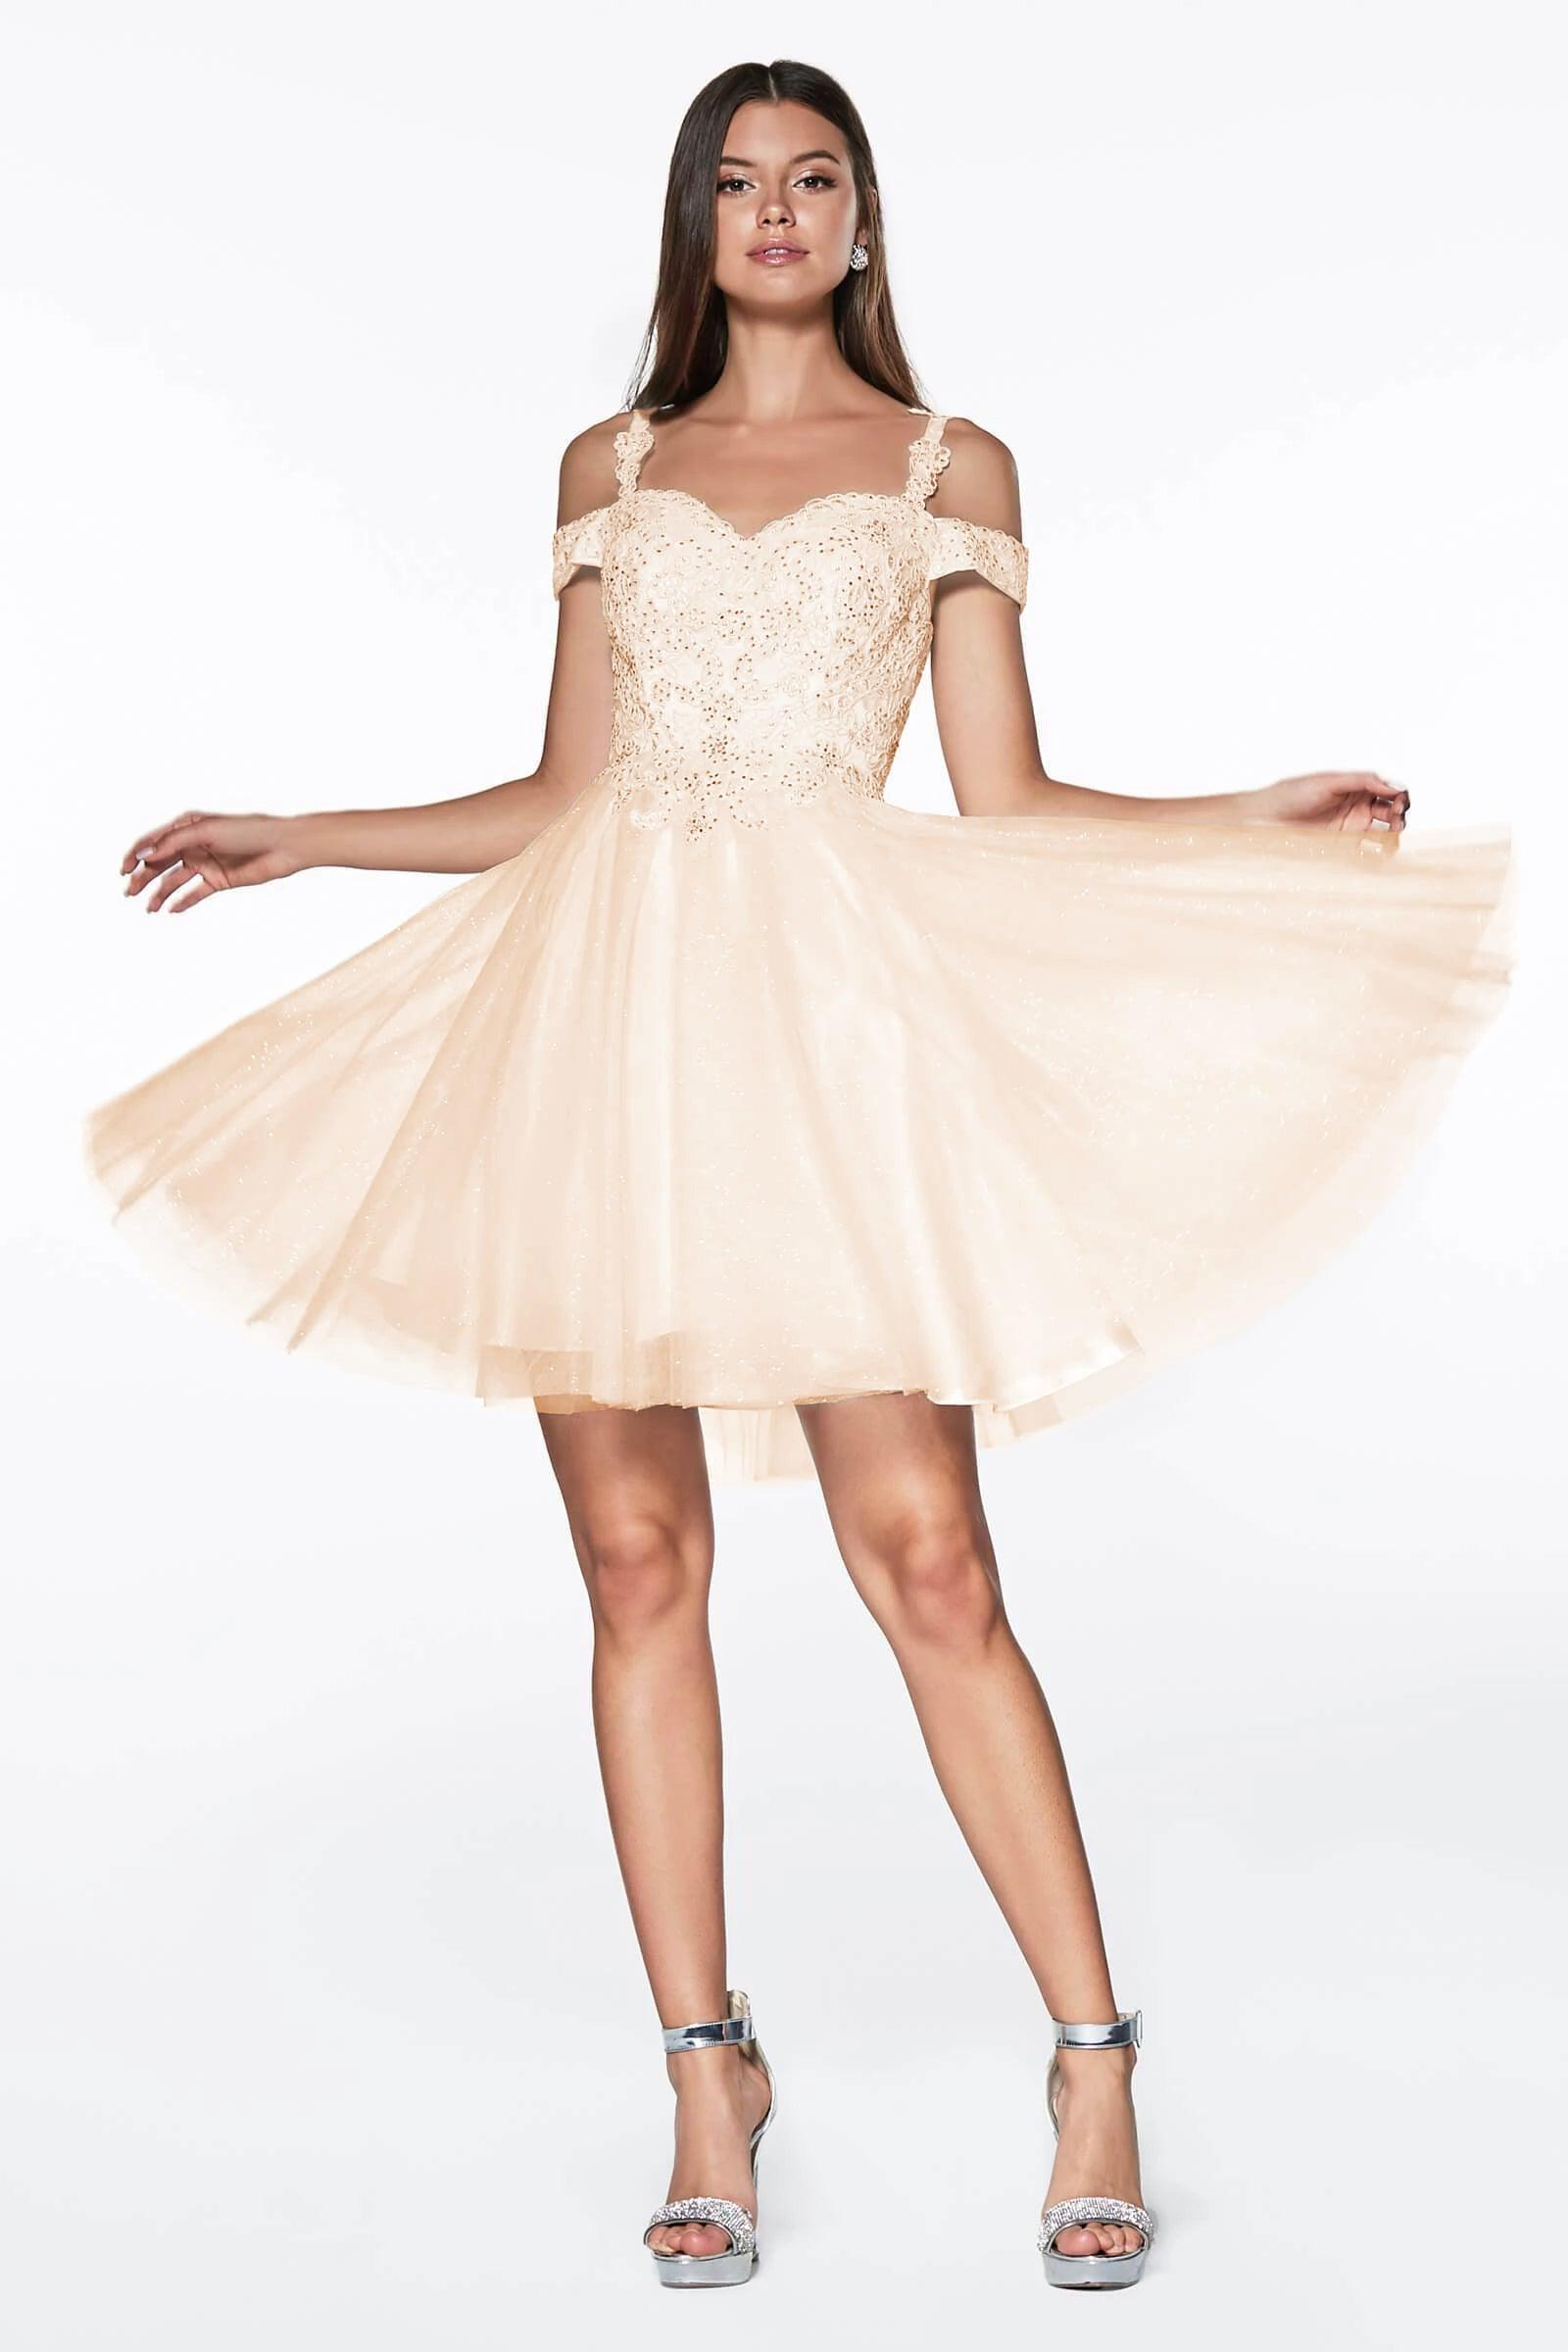 Short champagne bridesmaid dress formal dressoutlet the dress short champagne bridesmaid dress formal the dress outlet ombrellifo Gallery